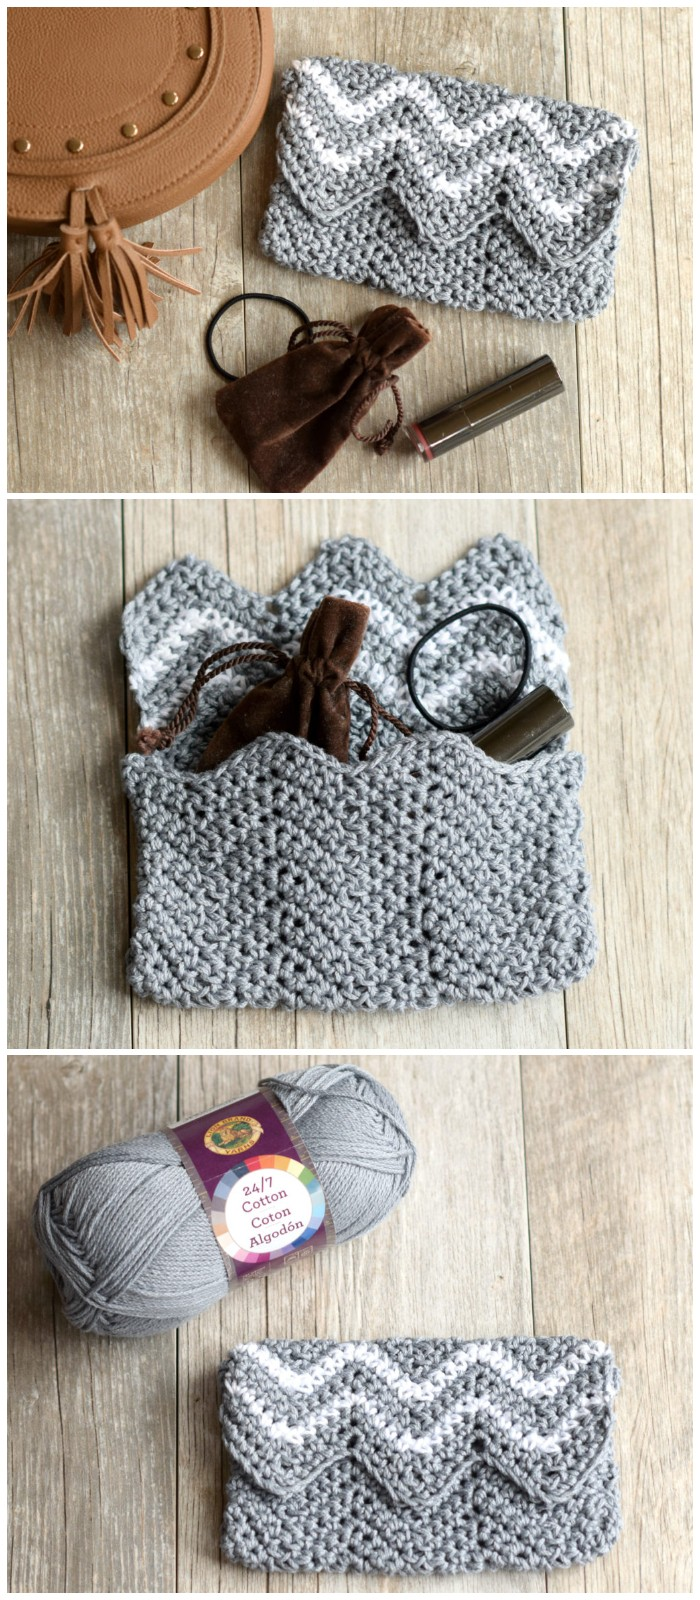 Purse Pouch Crochet Pattern